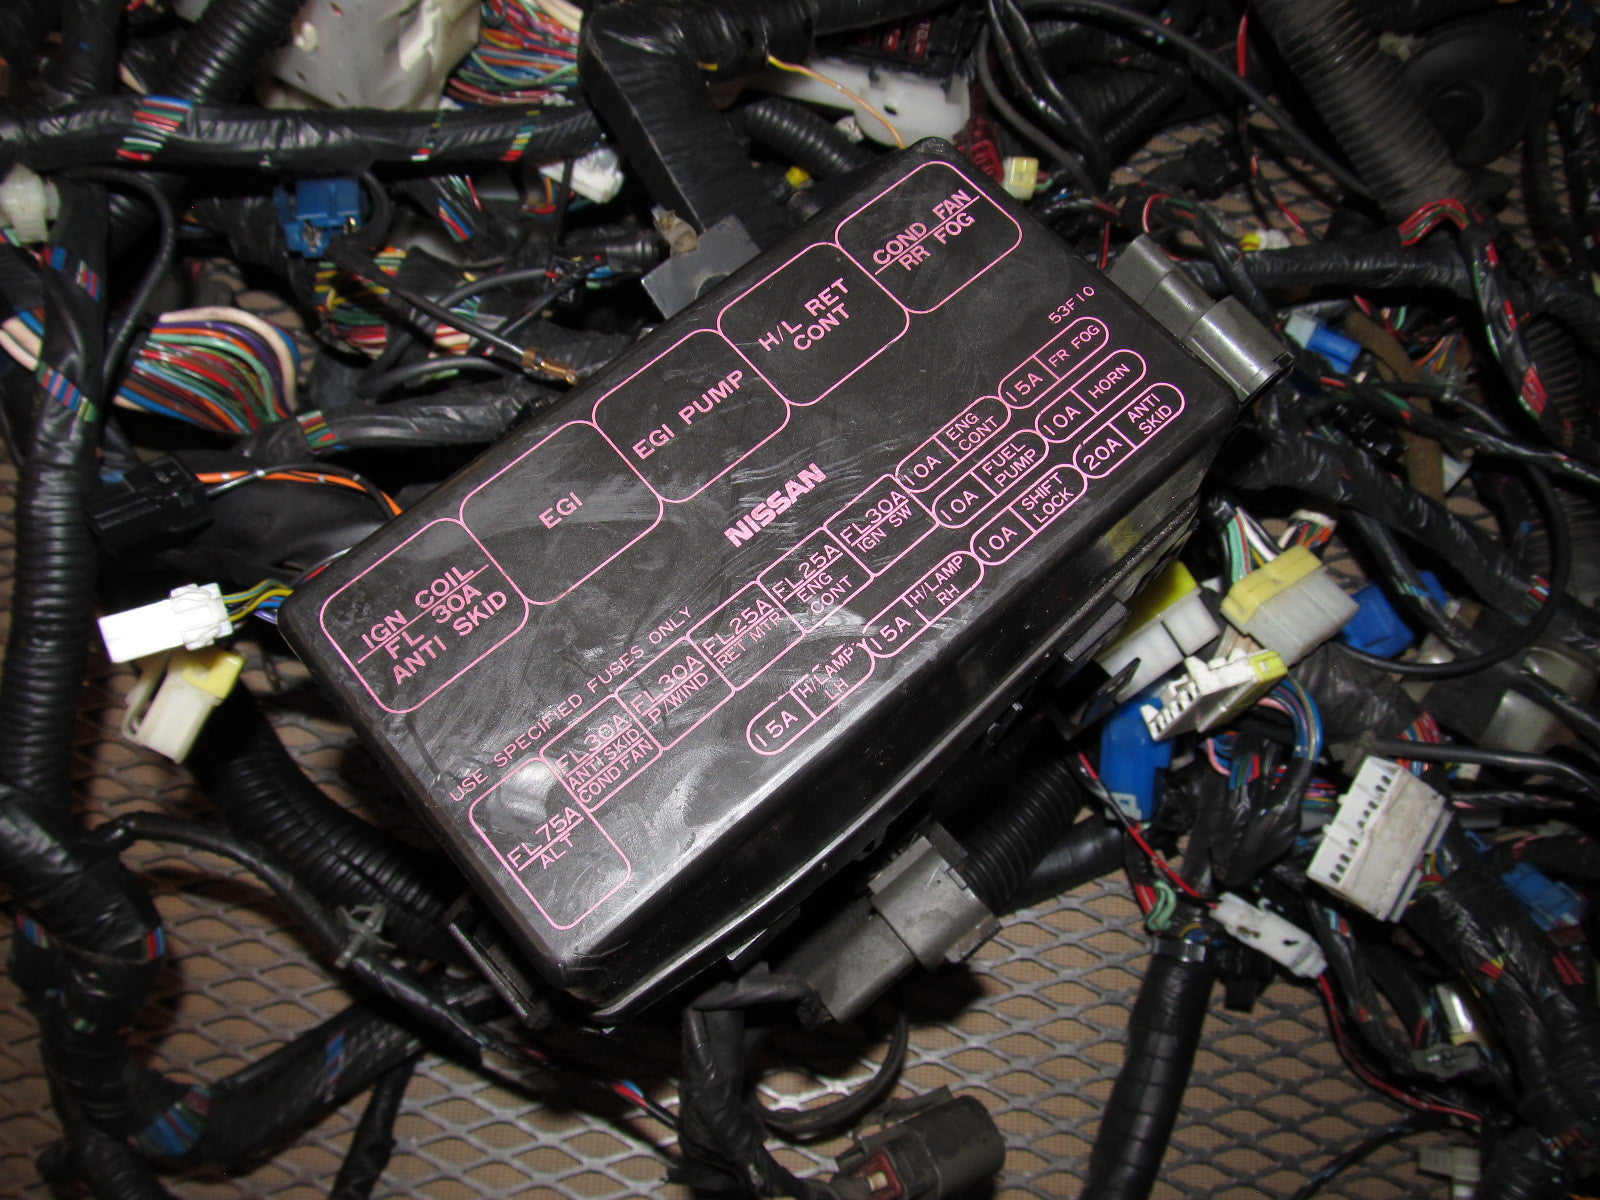 95 Nissan 240sx Engine Fuse Box Cover Wiring Diagram S14 1990 Diagrams Click